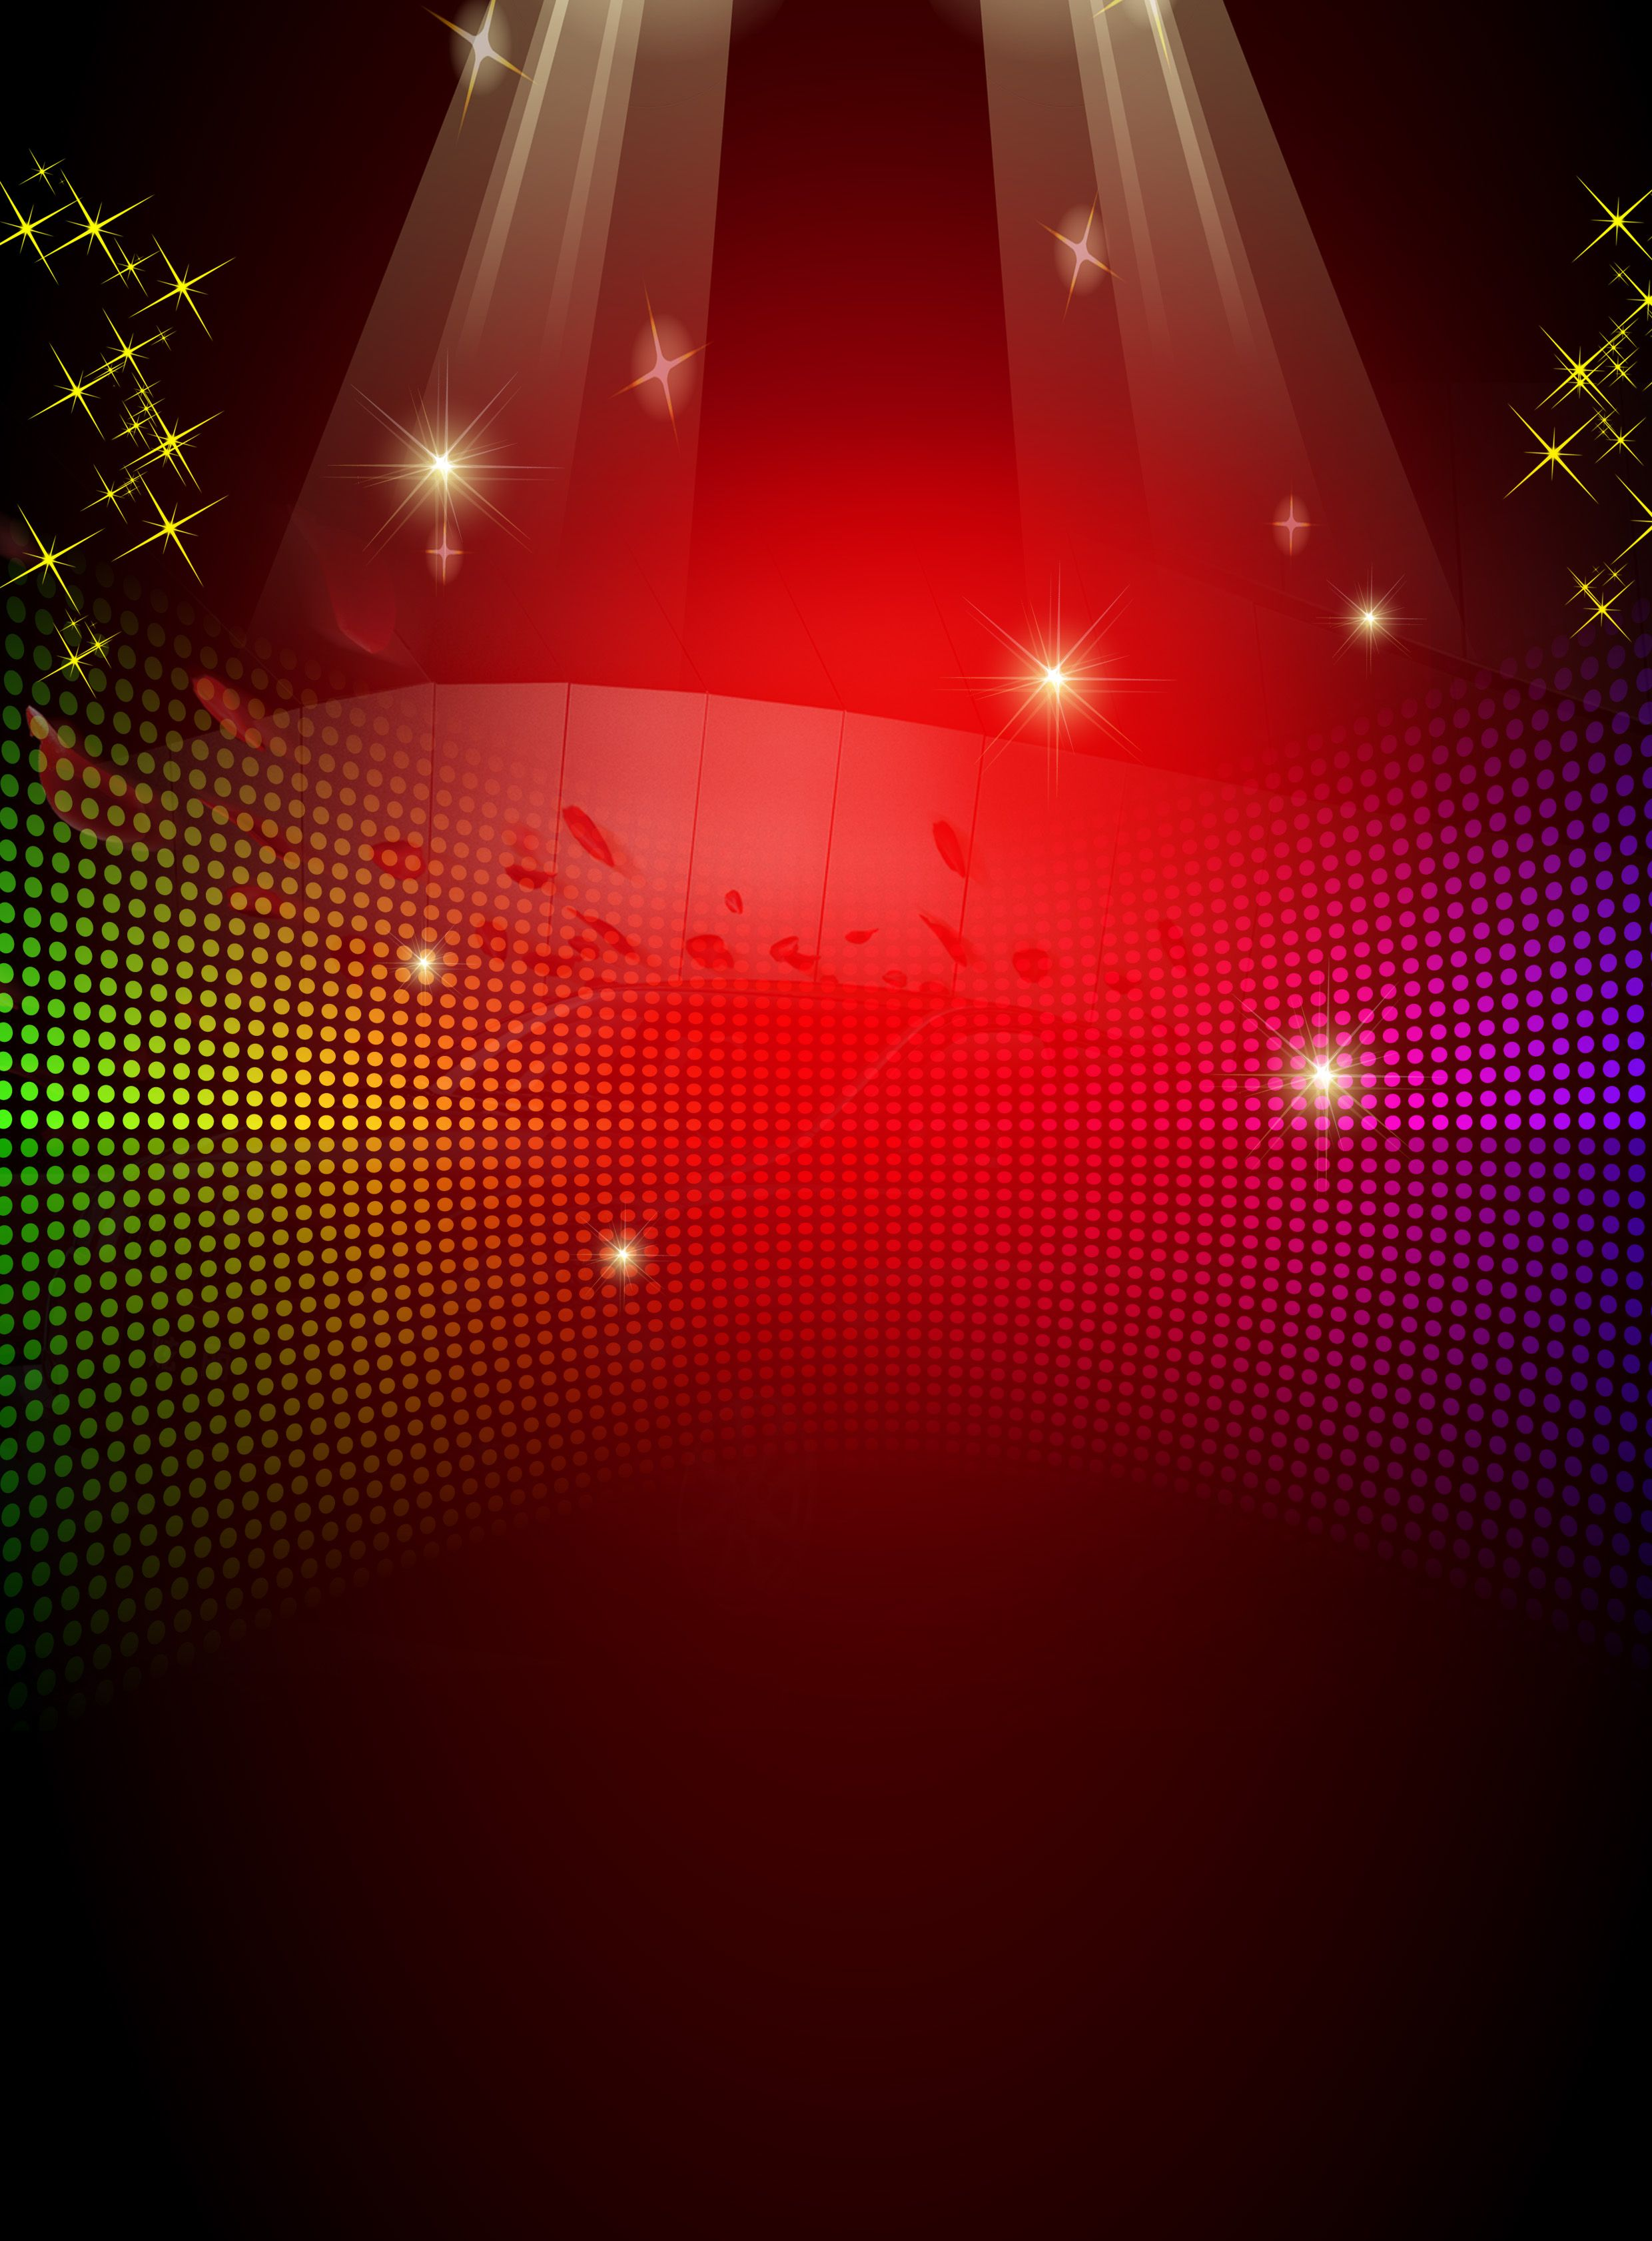 dazzling red background material party poster poster background design red background new background images dazzling red background material party